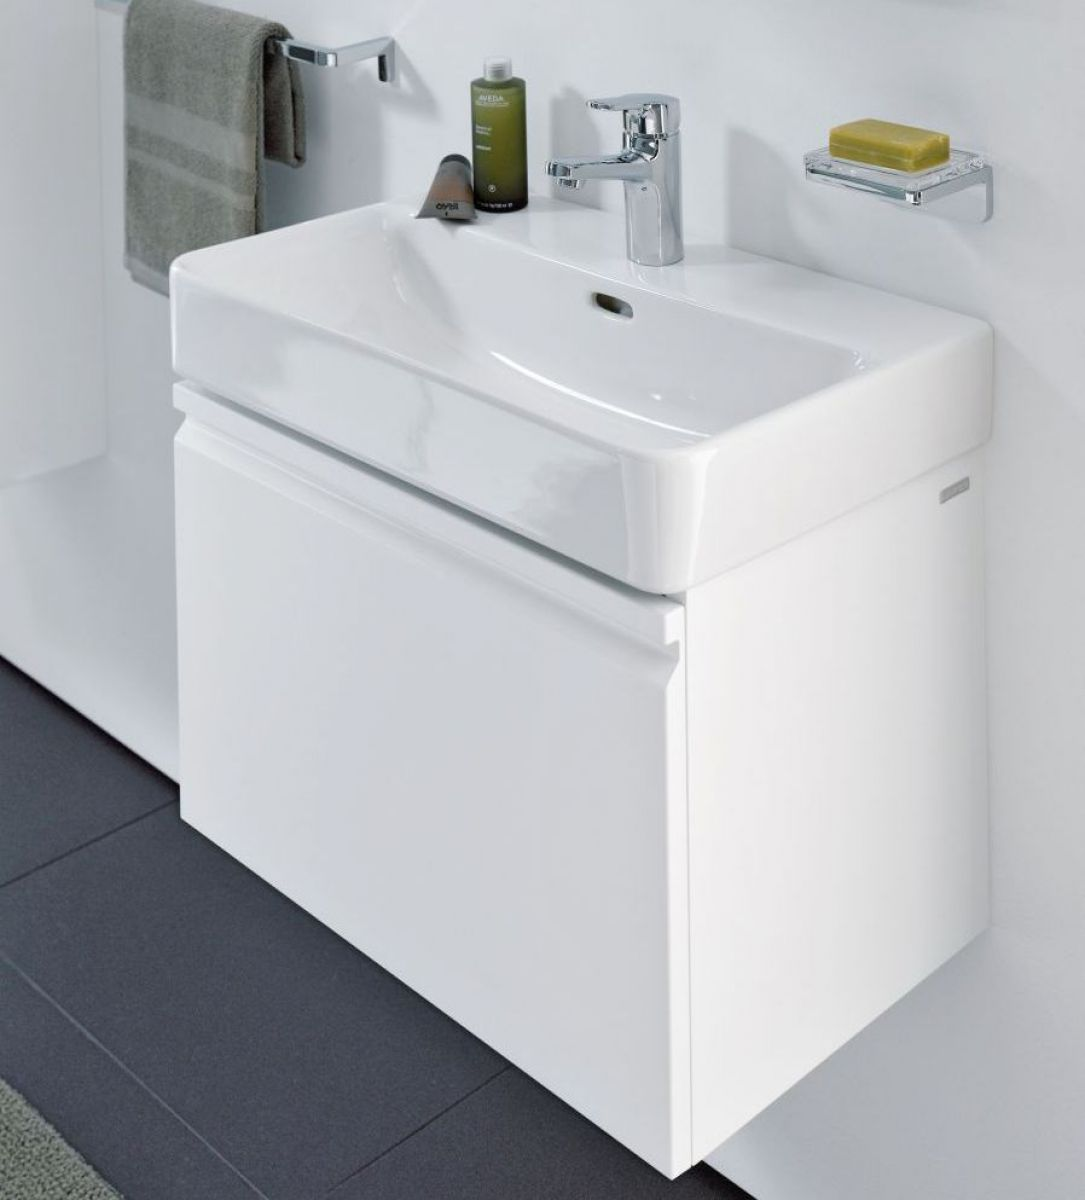 Laufen Pro S Waschtisch Laufen Pro S Single Drawer Vanity Unit And Compact Basin